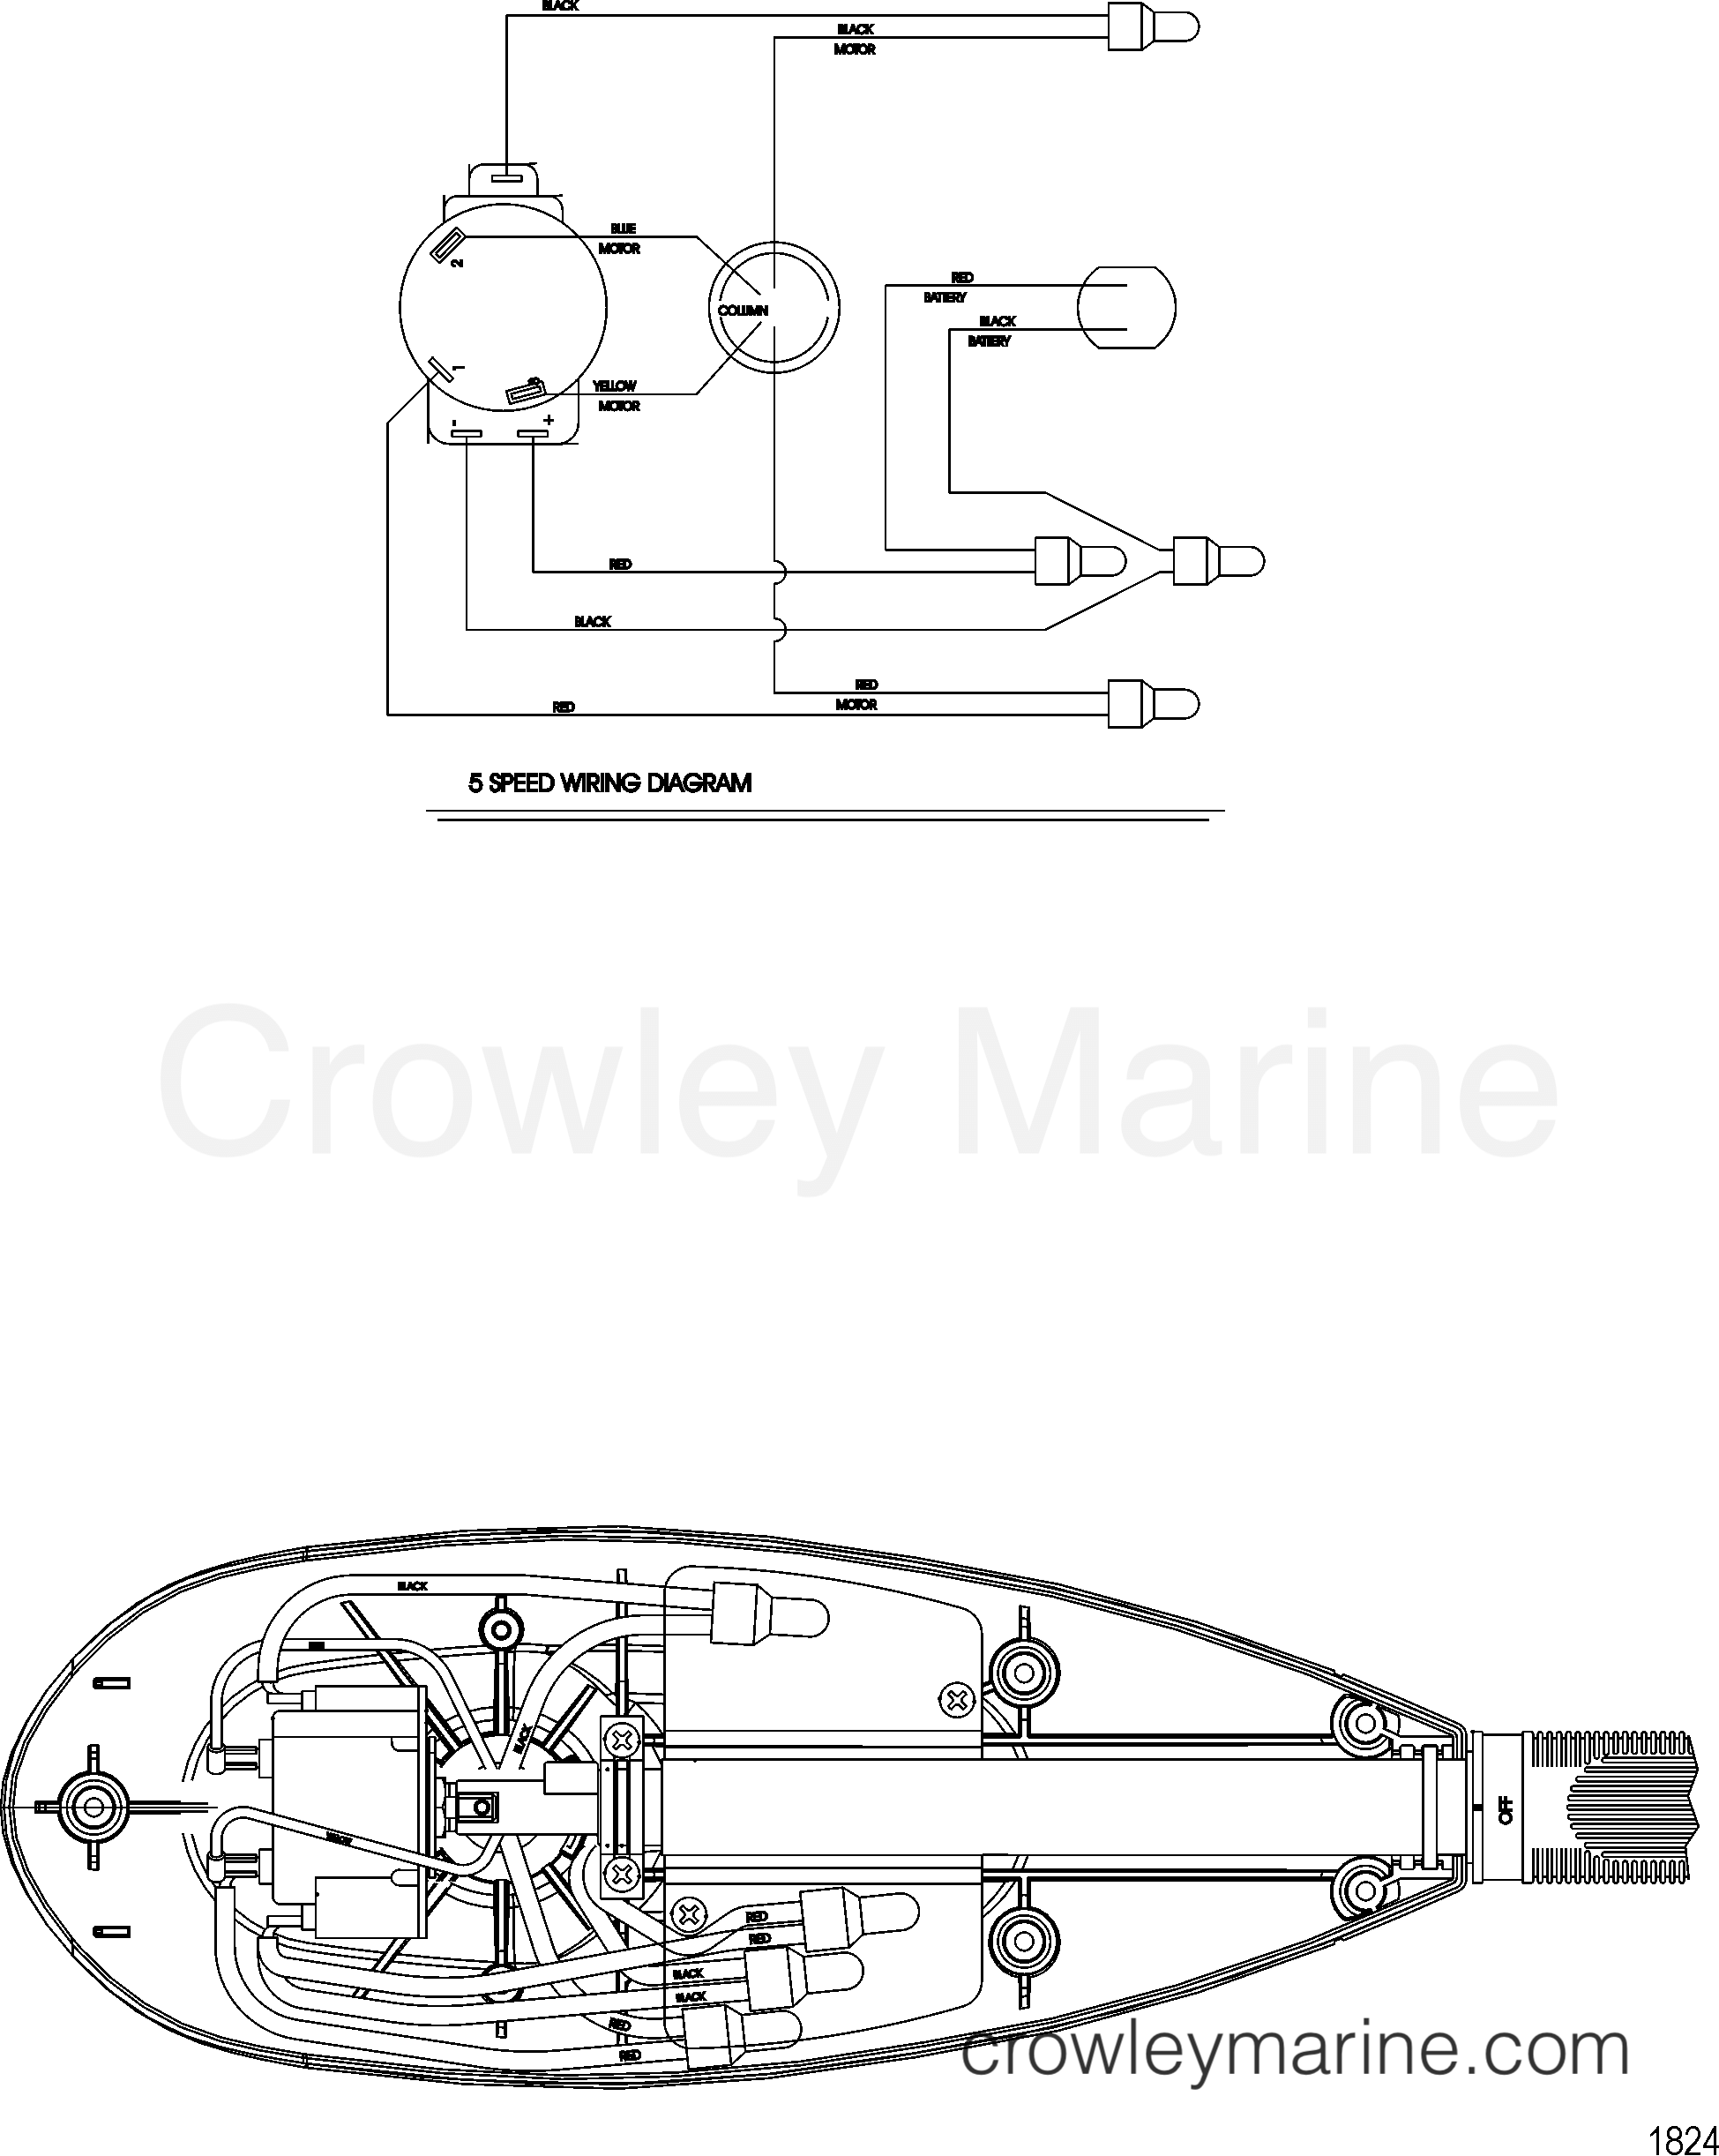 2006 MotorGuide 24V [MOTORGUIDE] - 921310264 WIRE DIAGRAM(MODEL FW54HB) (WITHOUT QUICK CONNECT) section